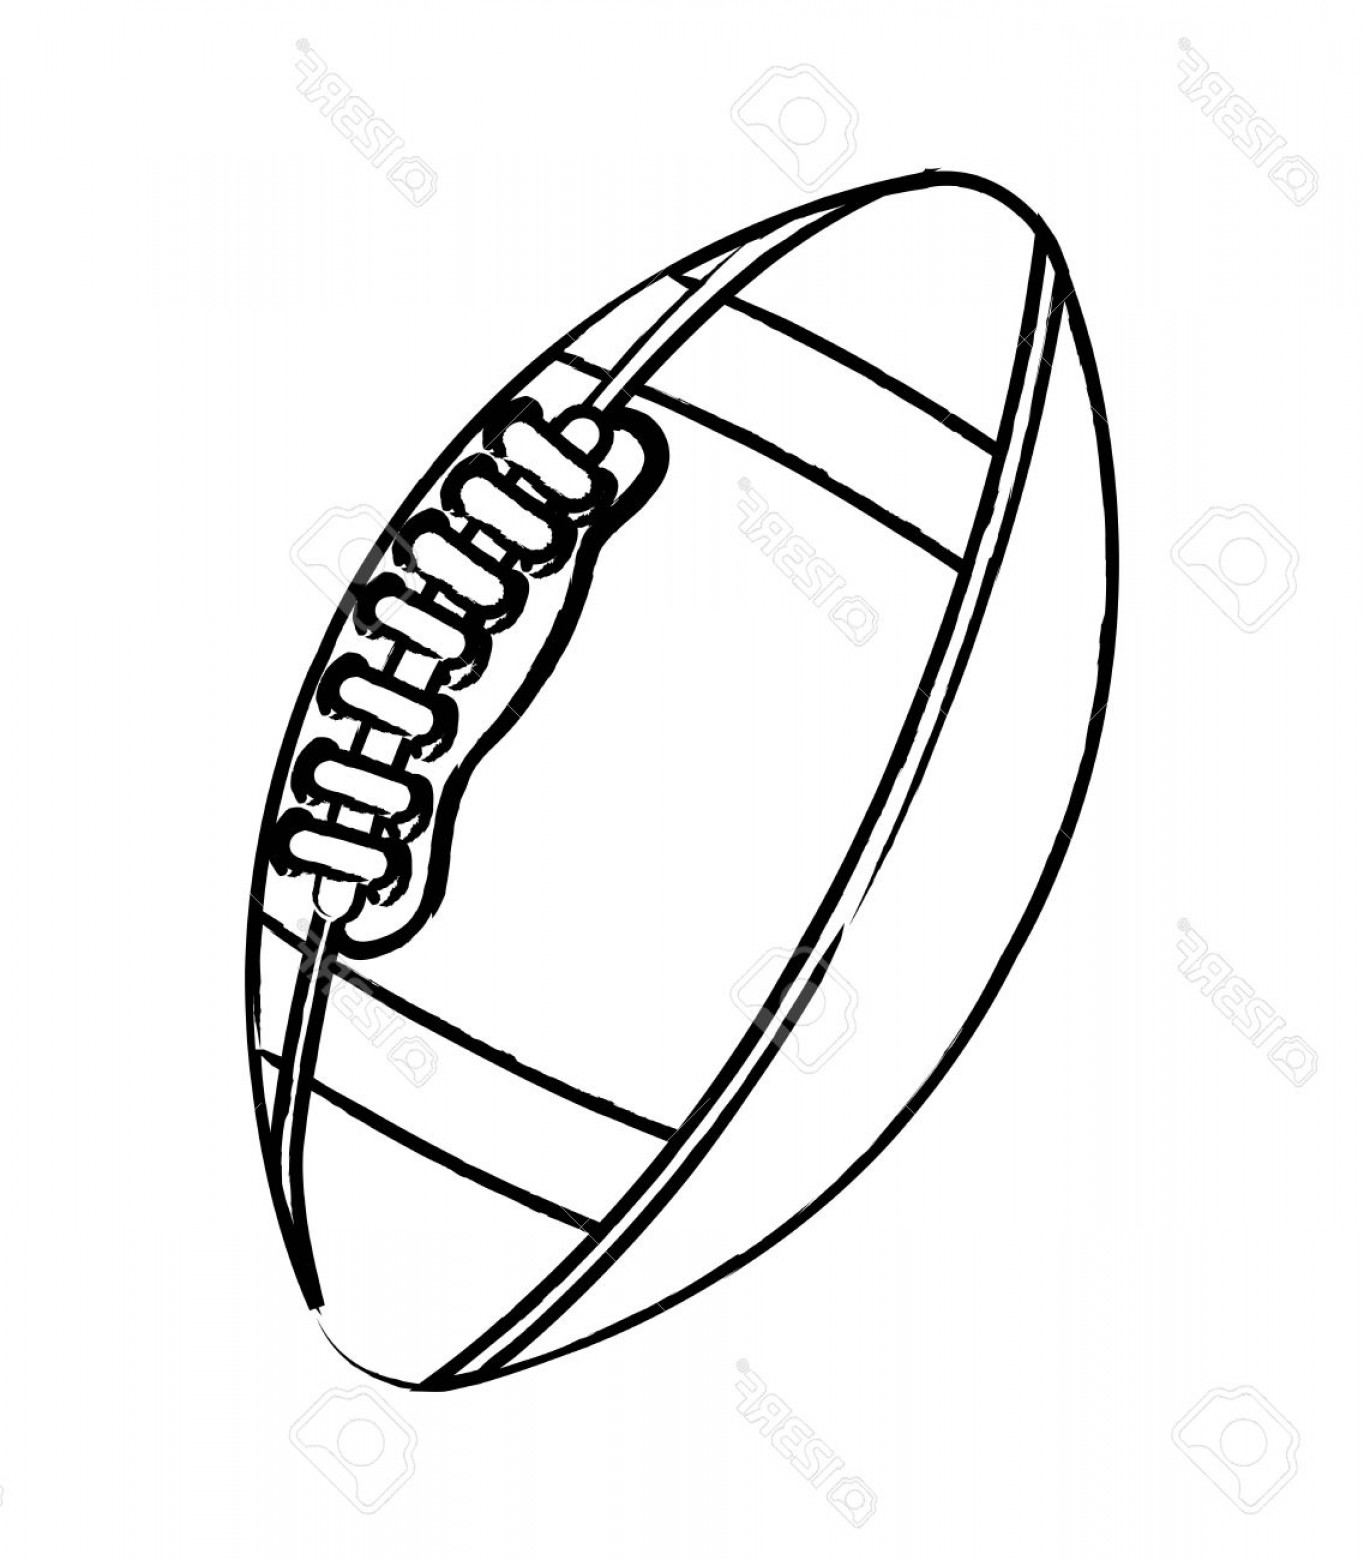 Black And White Vector American Football: Photoamerican Football Over White Background Vector Illustration